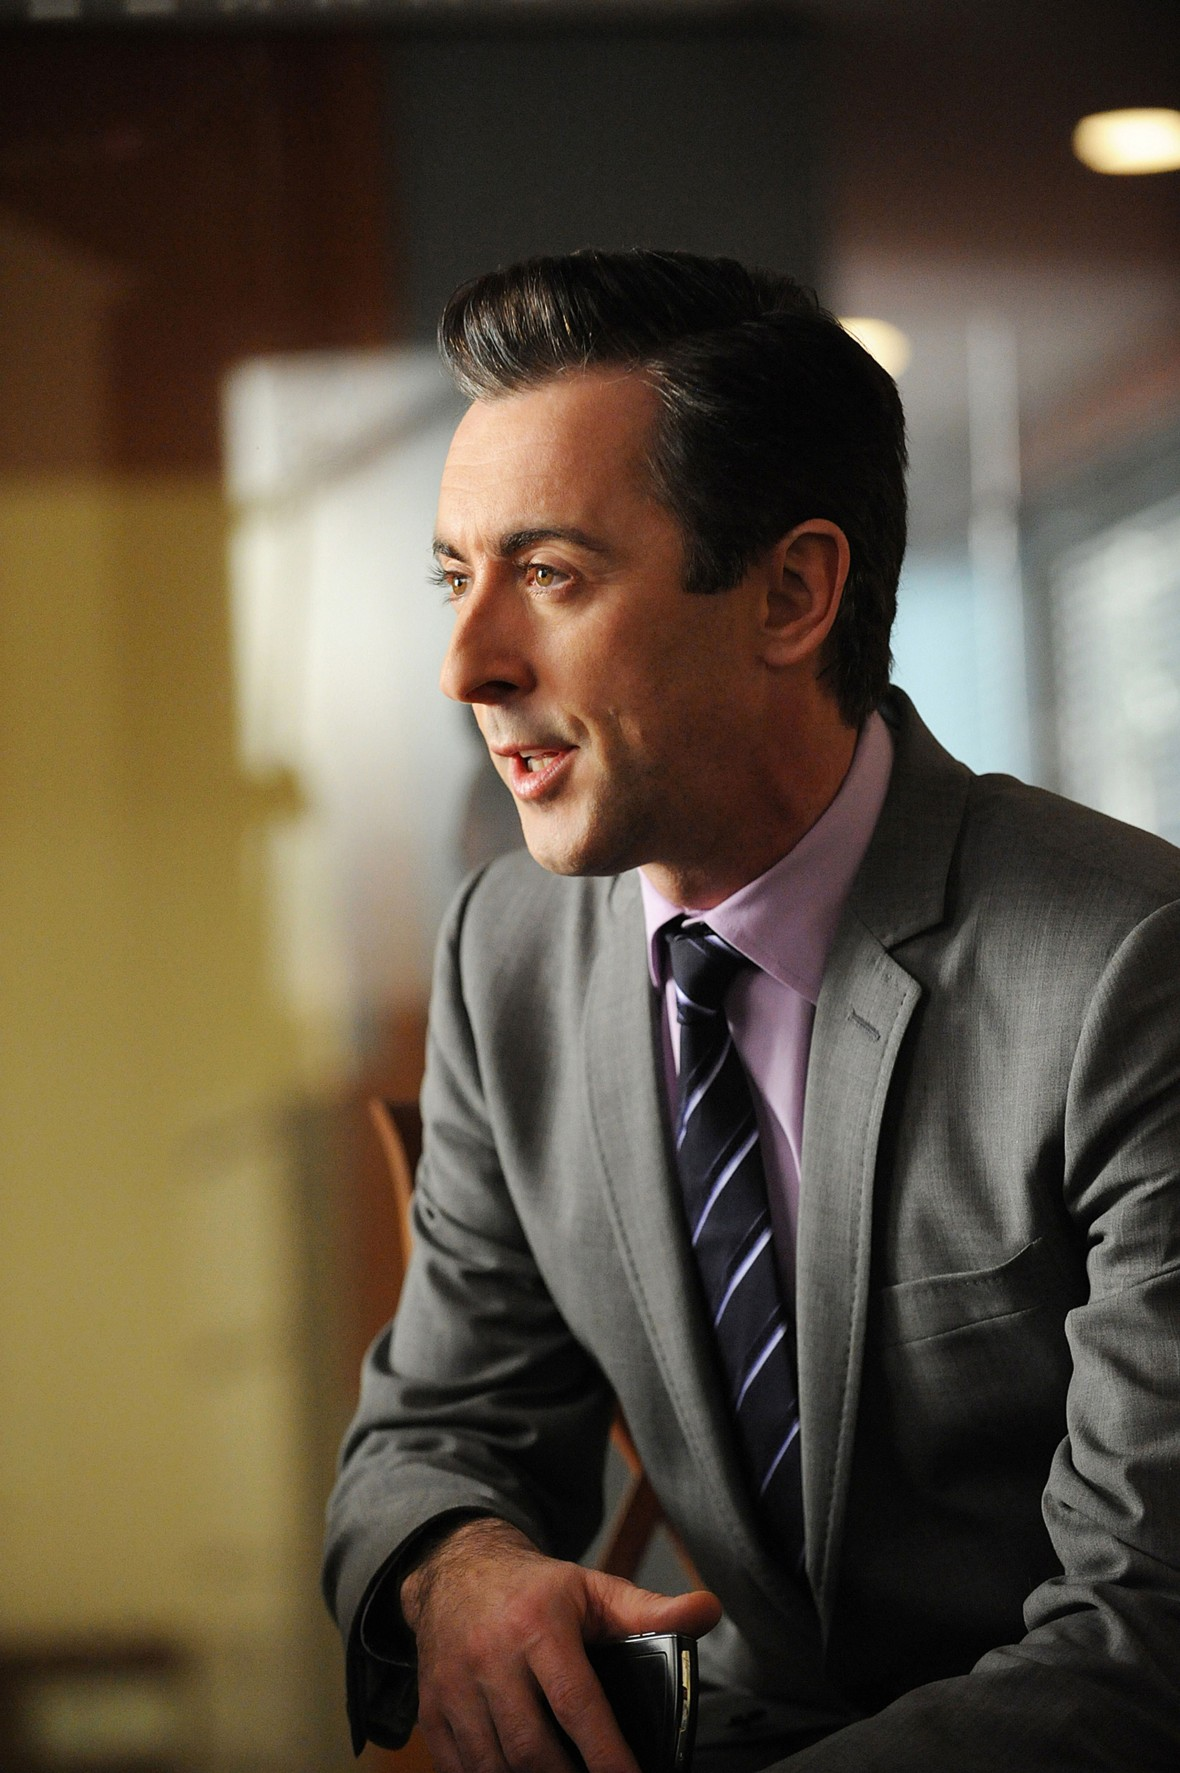 Alan Cumming on 'The Good Wife'